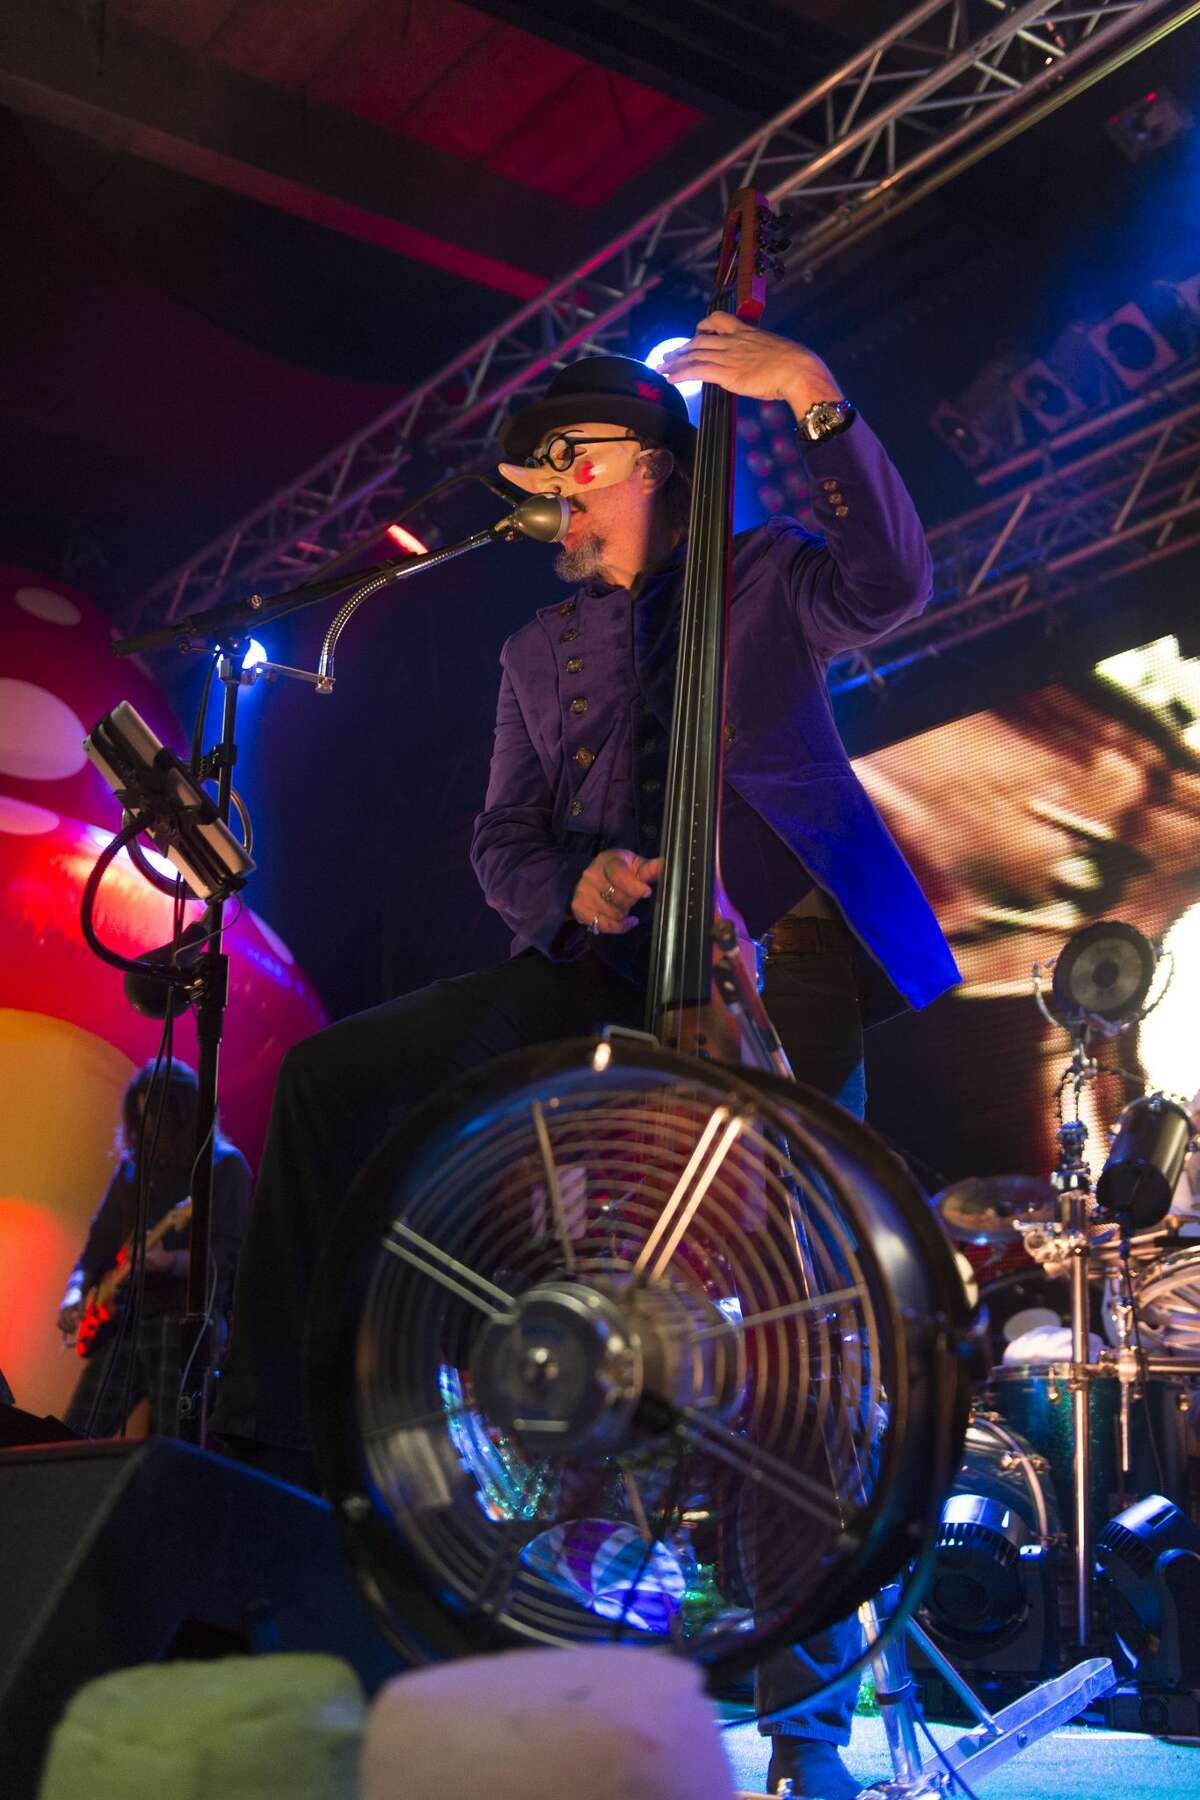 Primus:The rock band will be performing at White Oak Music Hall on Saturday, Oct. 21 at 7 p.m. More Details: www.whiteoakmusichall.com